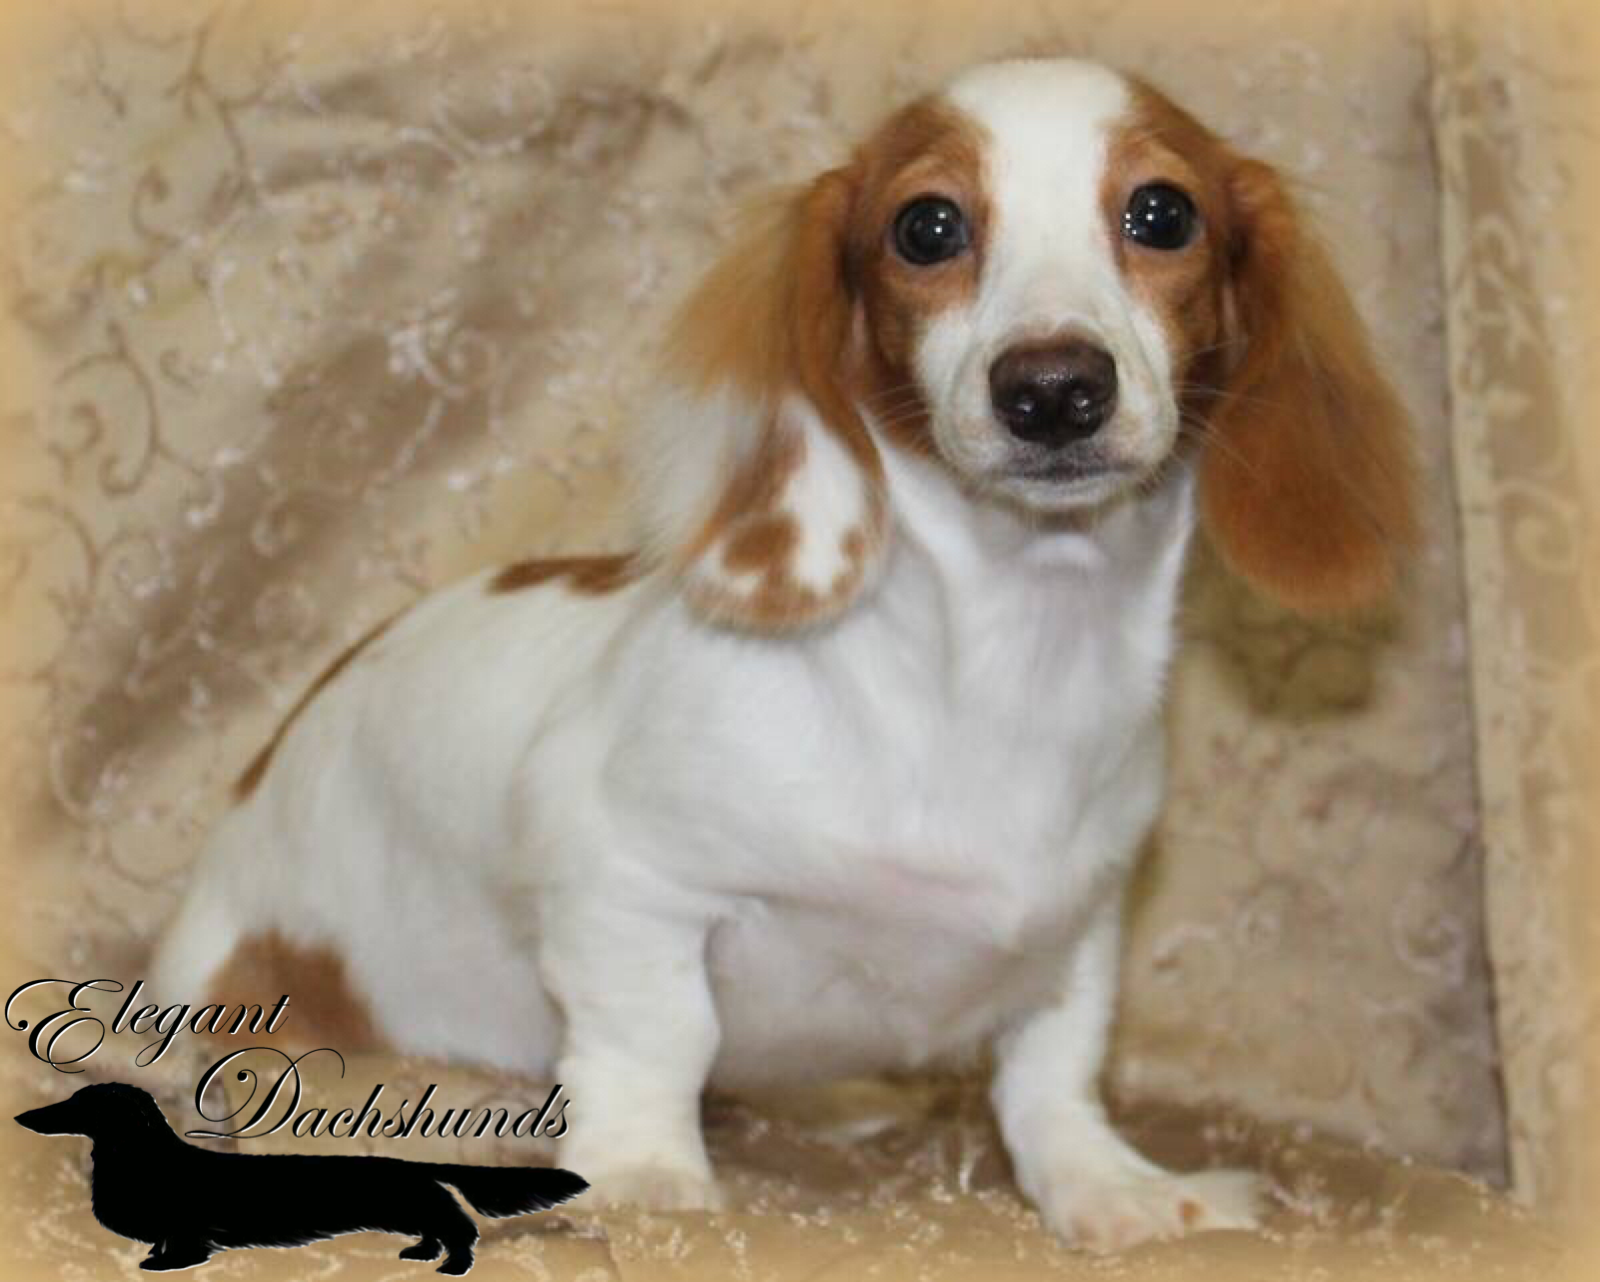 Red Dapple Piebald Emerald Coast Elegant Dachshunds Weiner Dog Dachshund Dogs